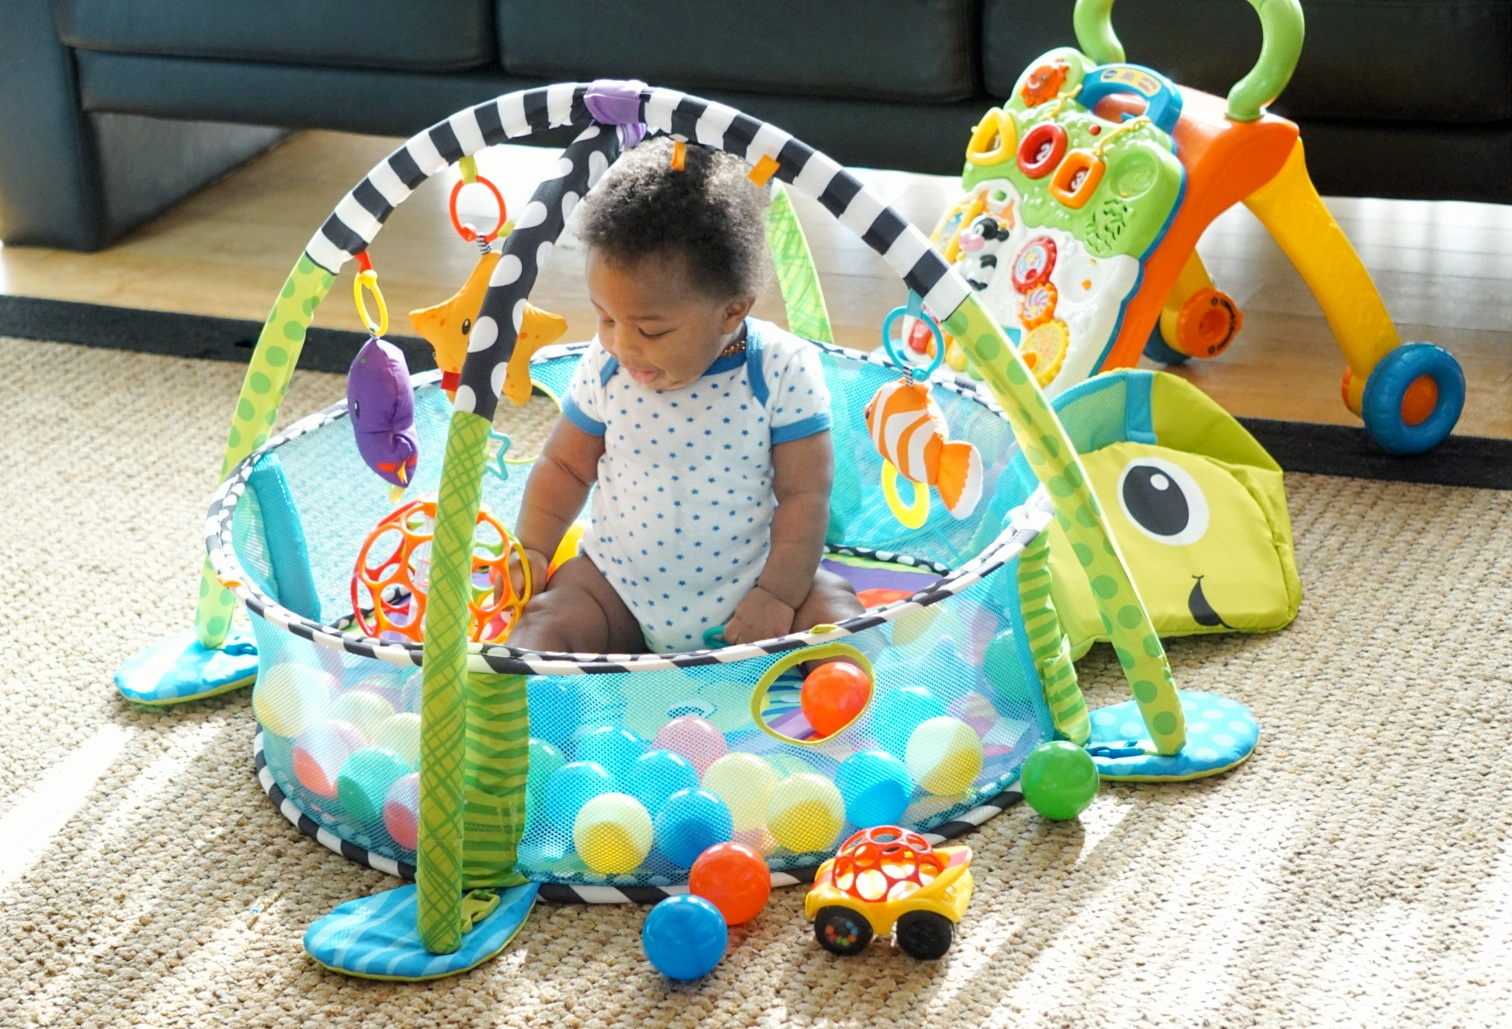 5 Toys That Will Keep Your Baby Busy While You Work